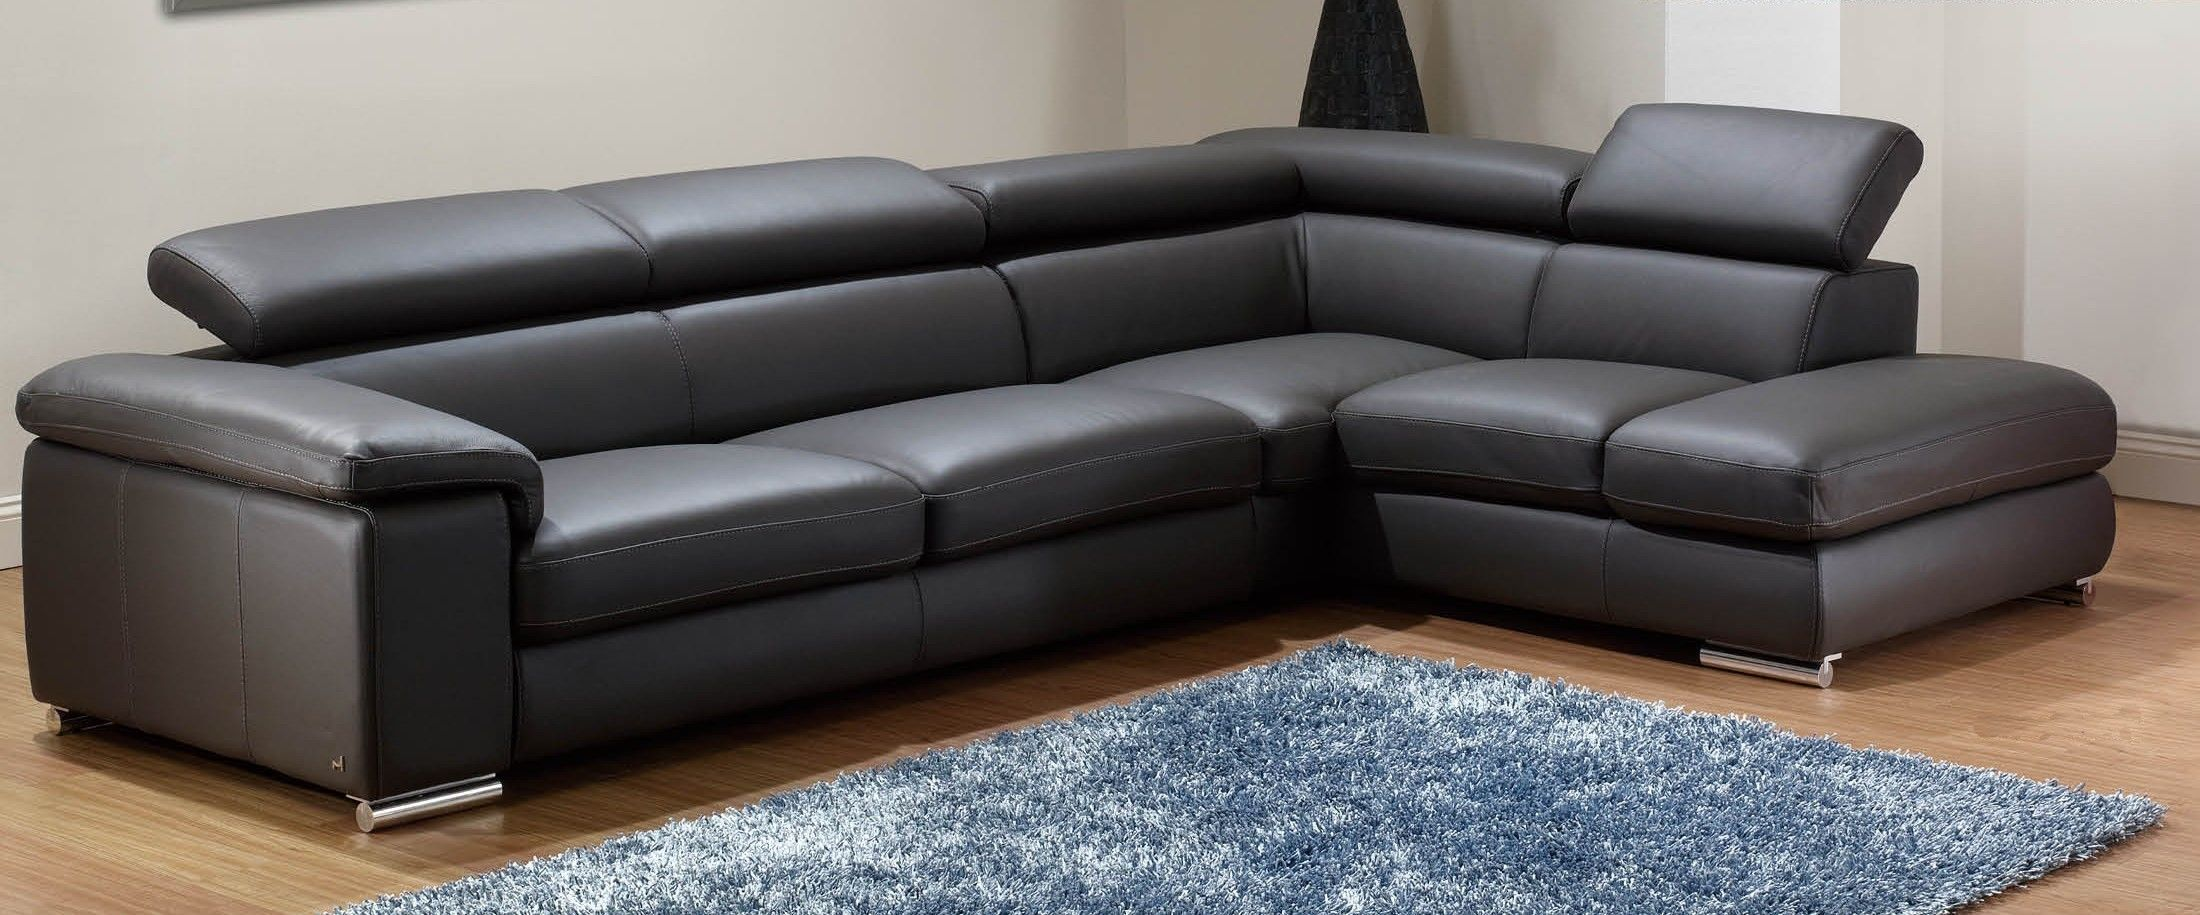 cute contemporary sectional sofa photo-Modern Contemporary Sectional sofa Layout